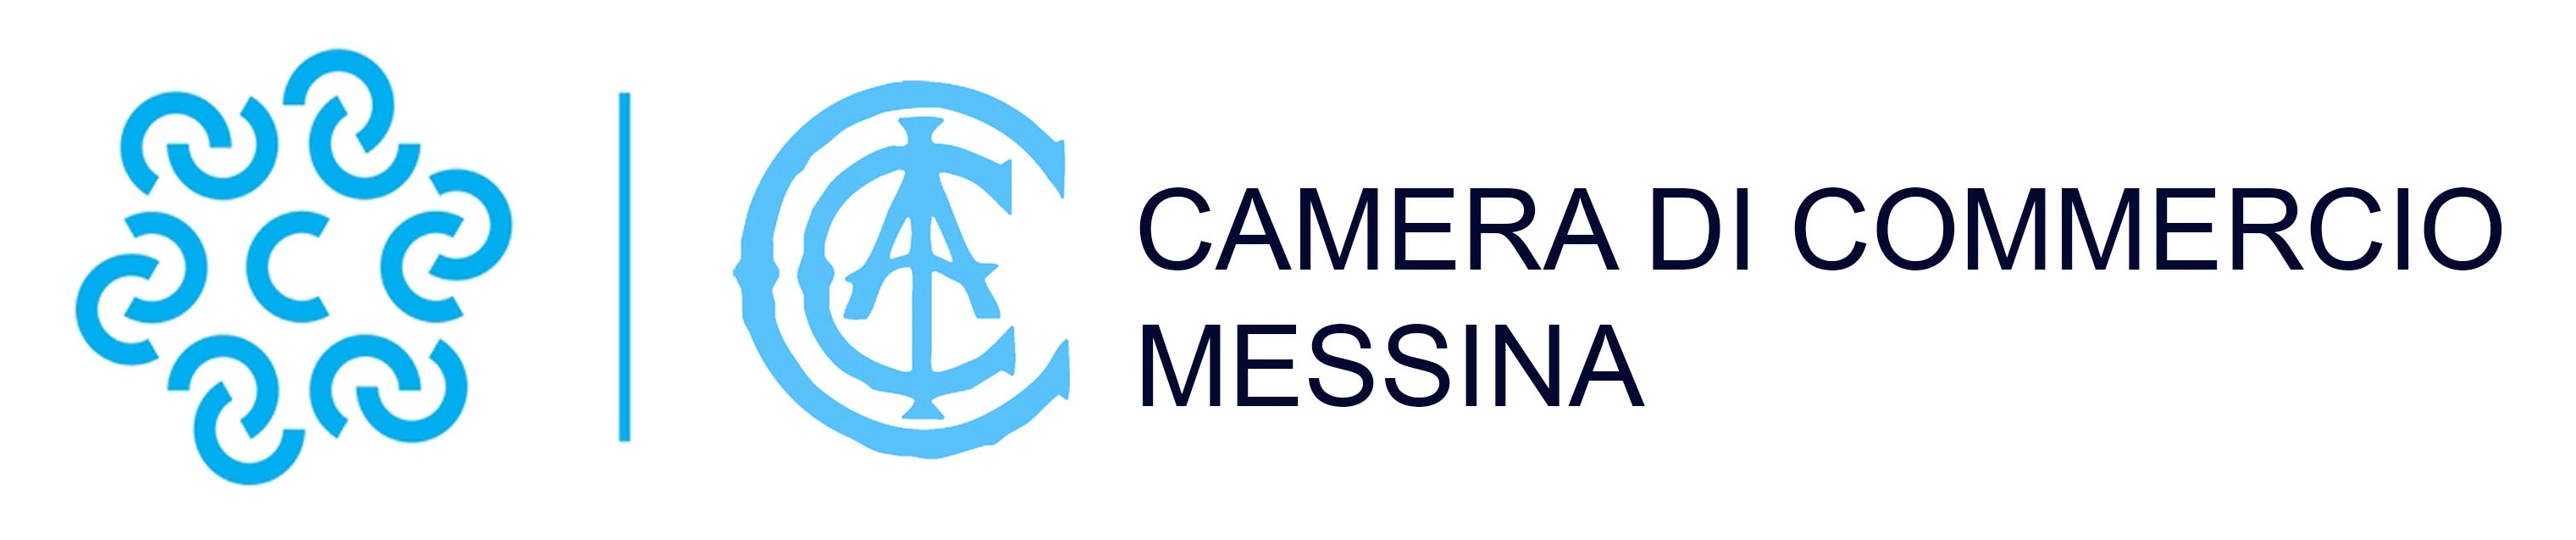 Camera di Commercio di Messina